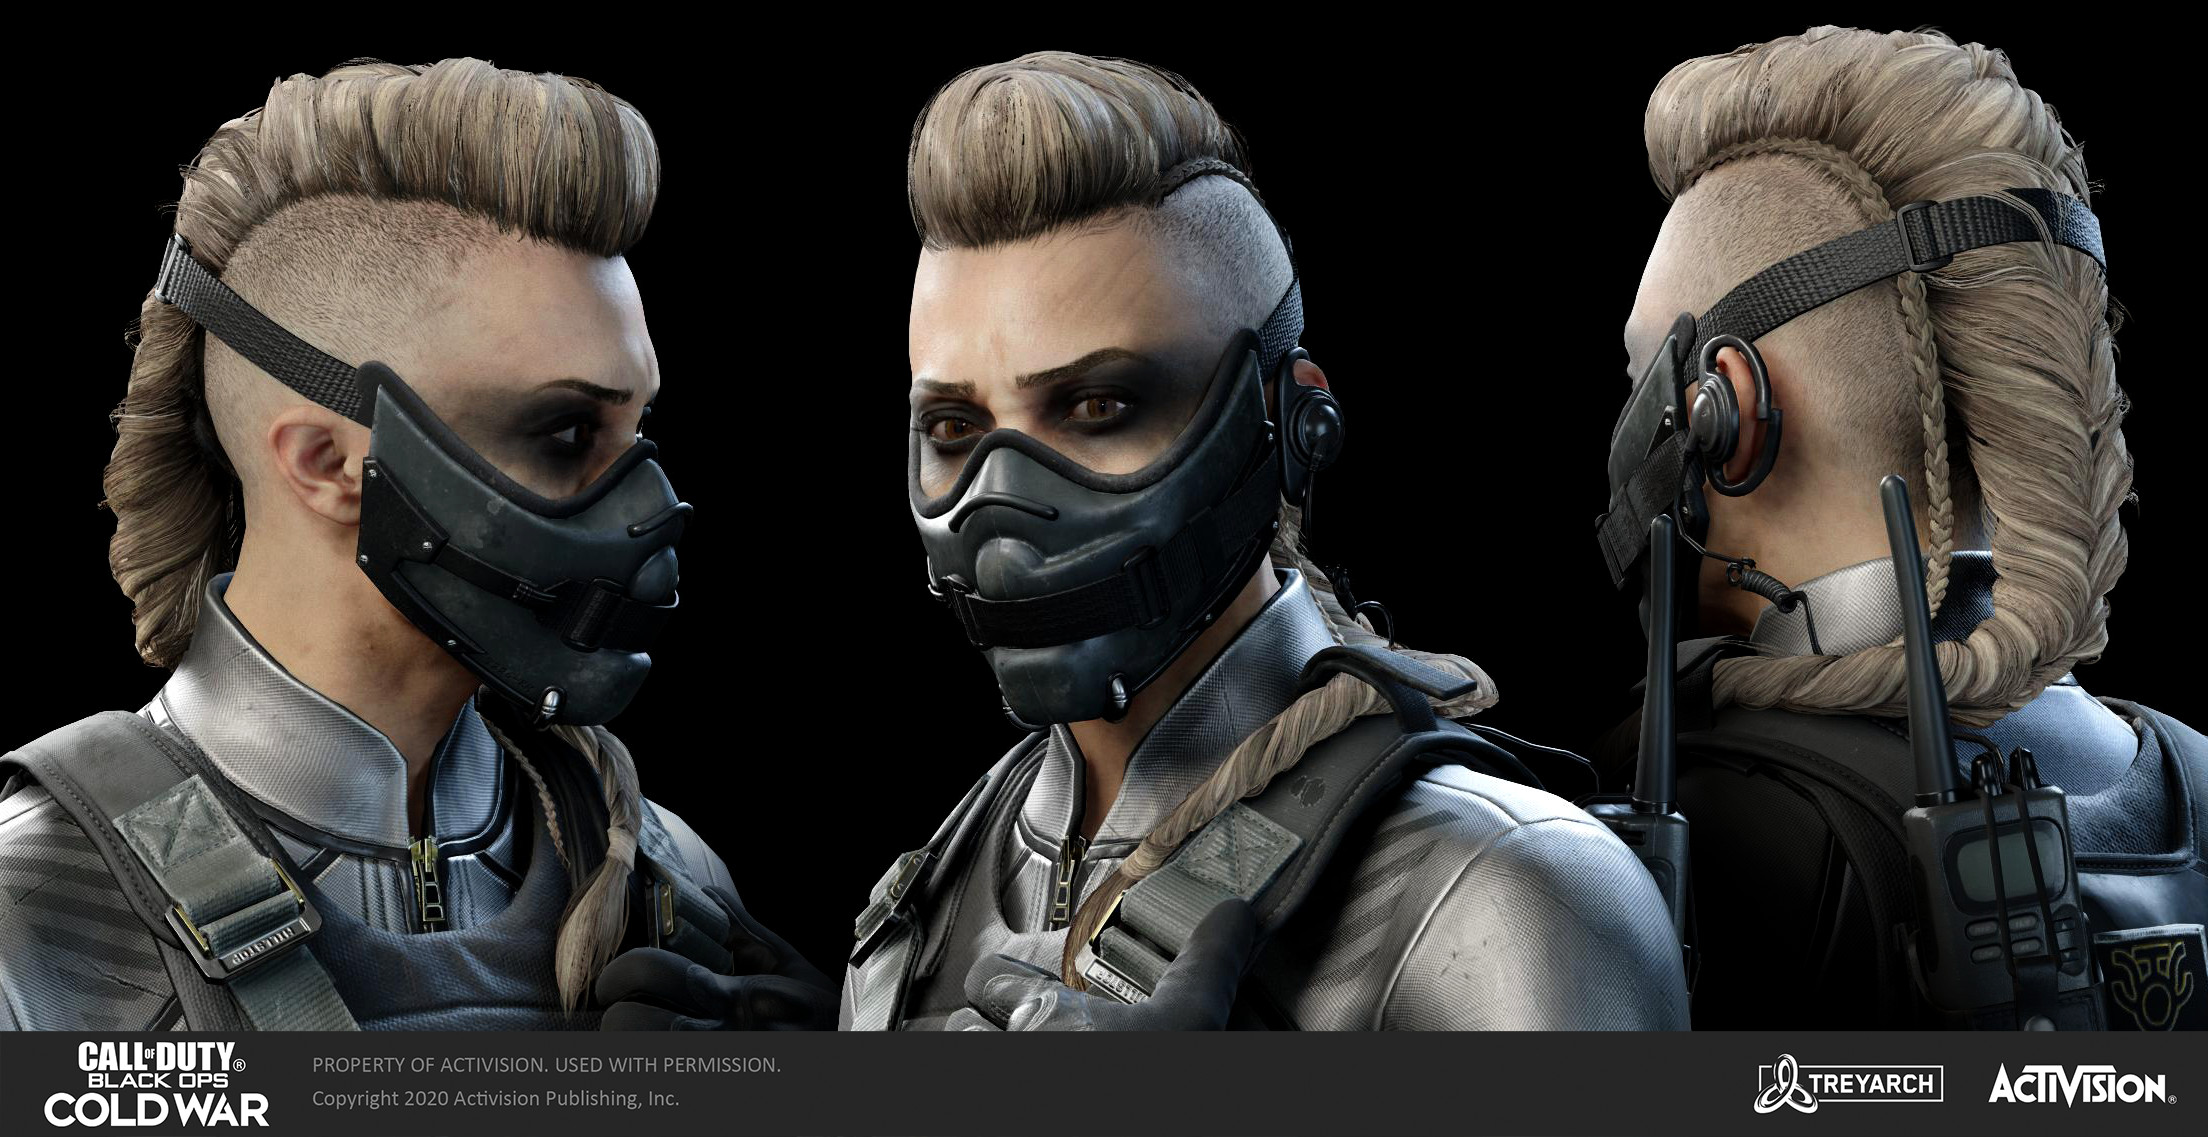 Her base outfit was made by Kyle Martin, and the original concept design by Dave Paget.